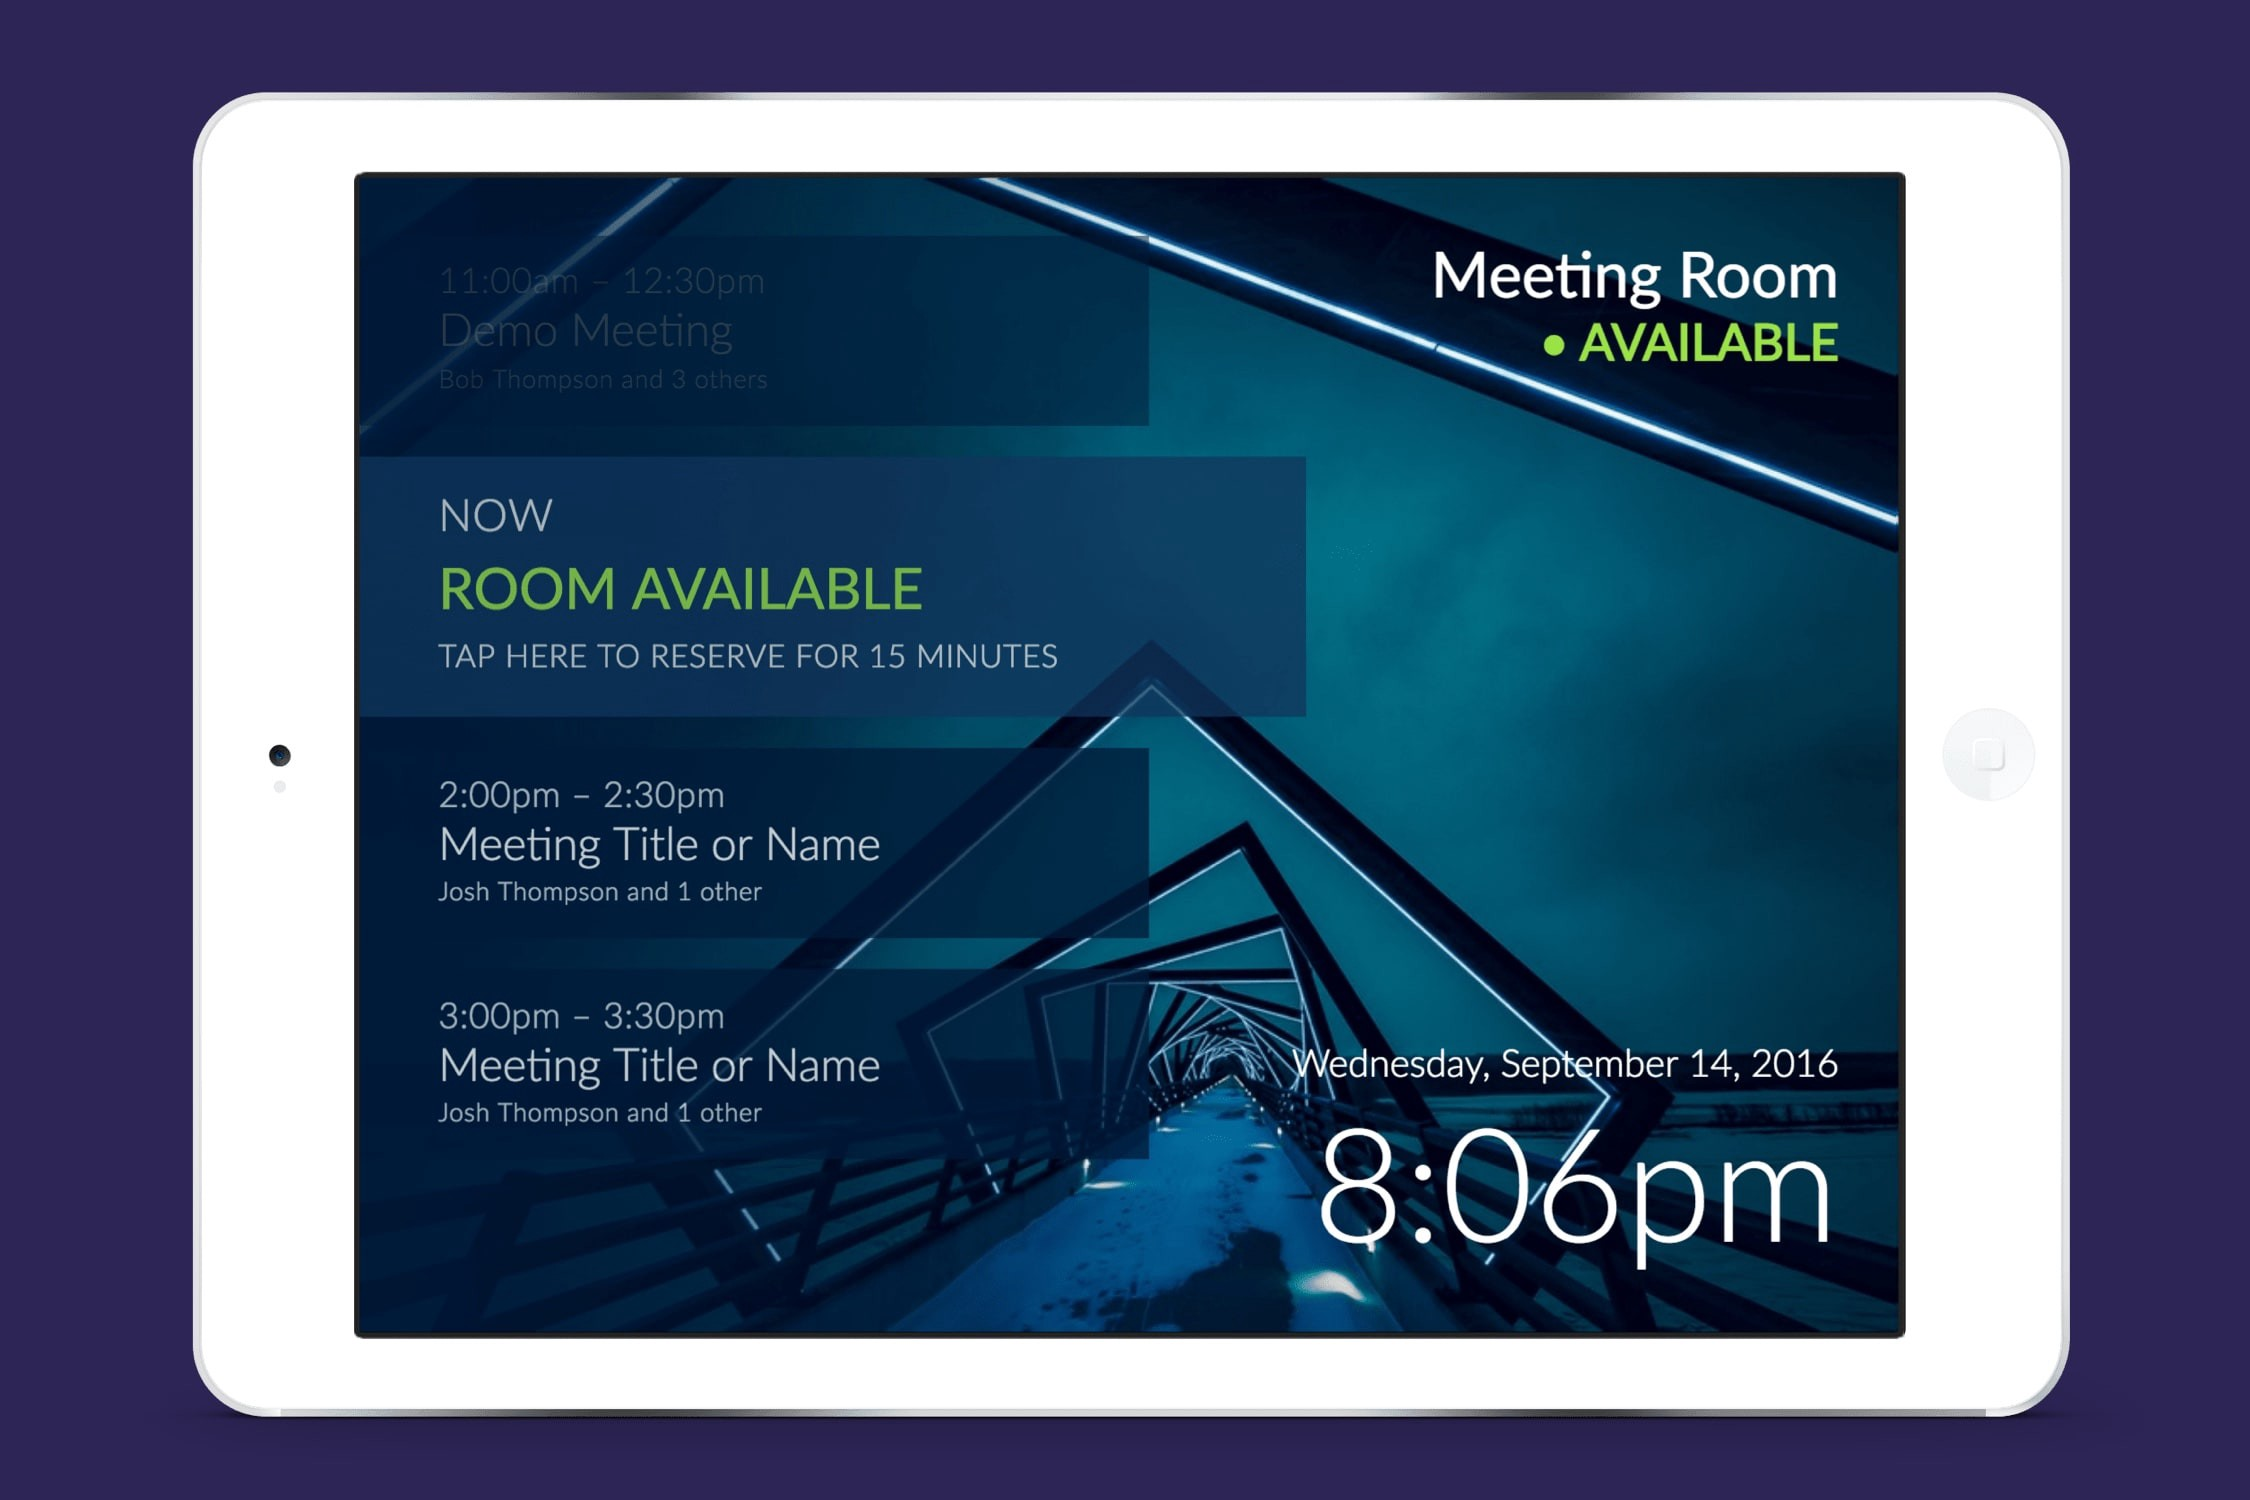 how to create your own conference room signage for office 365